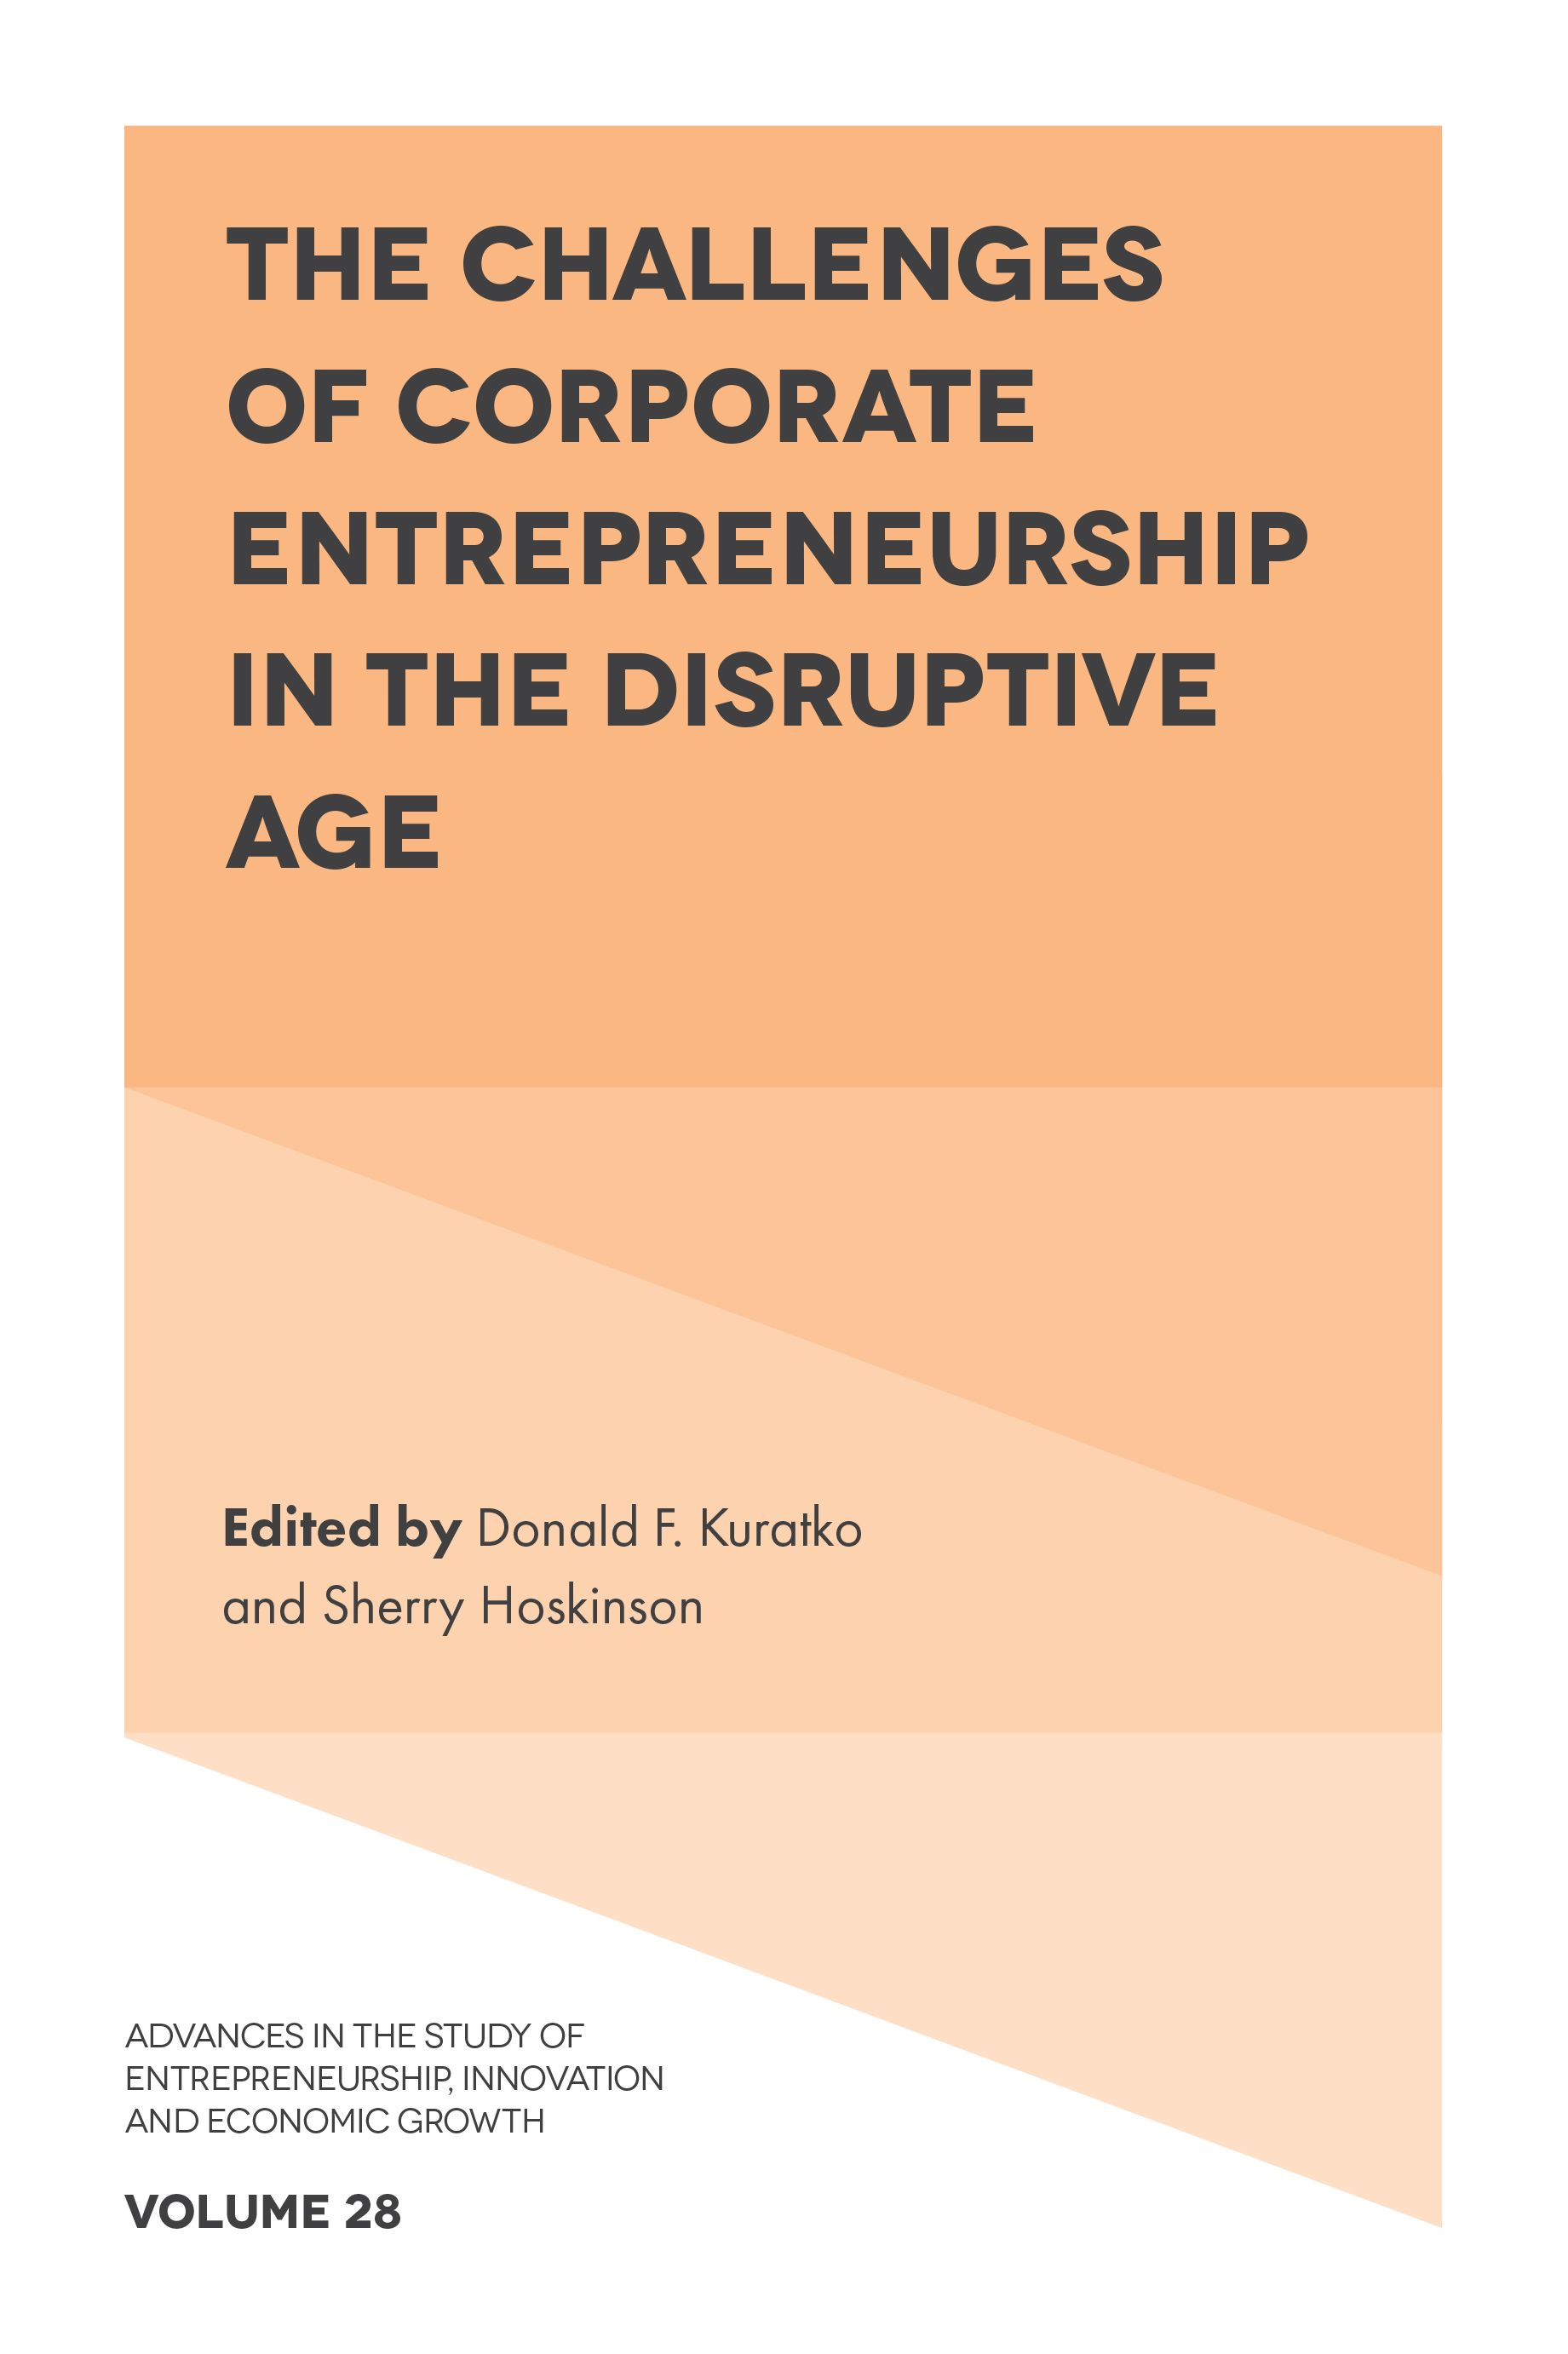 Integrating Corporate Entrepreneurship and Organization Development Through Learning and Leadership